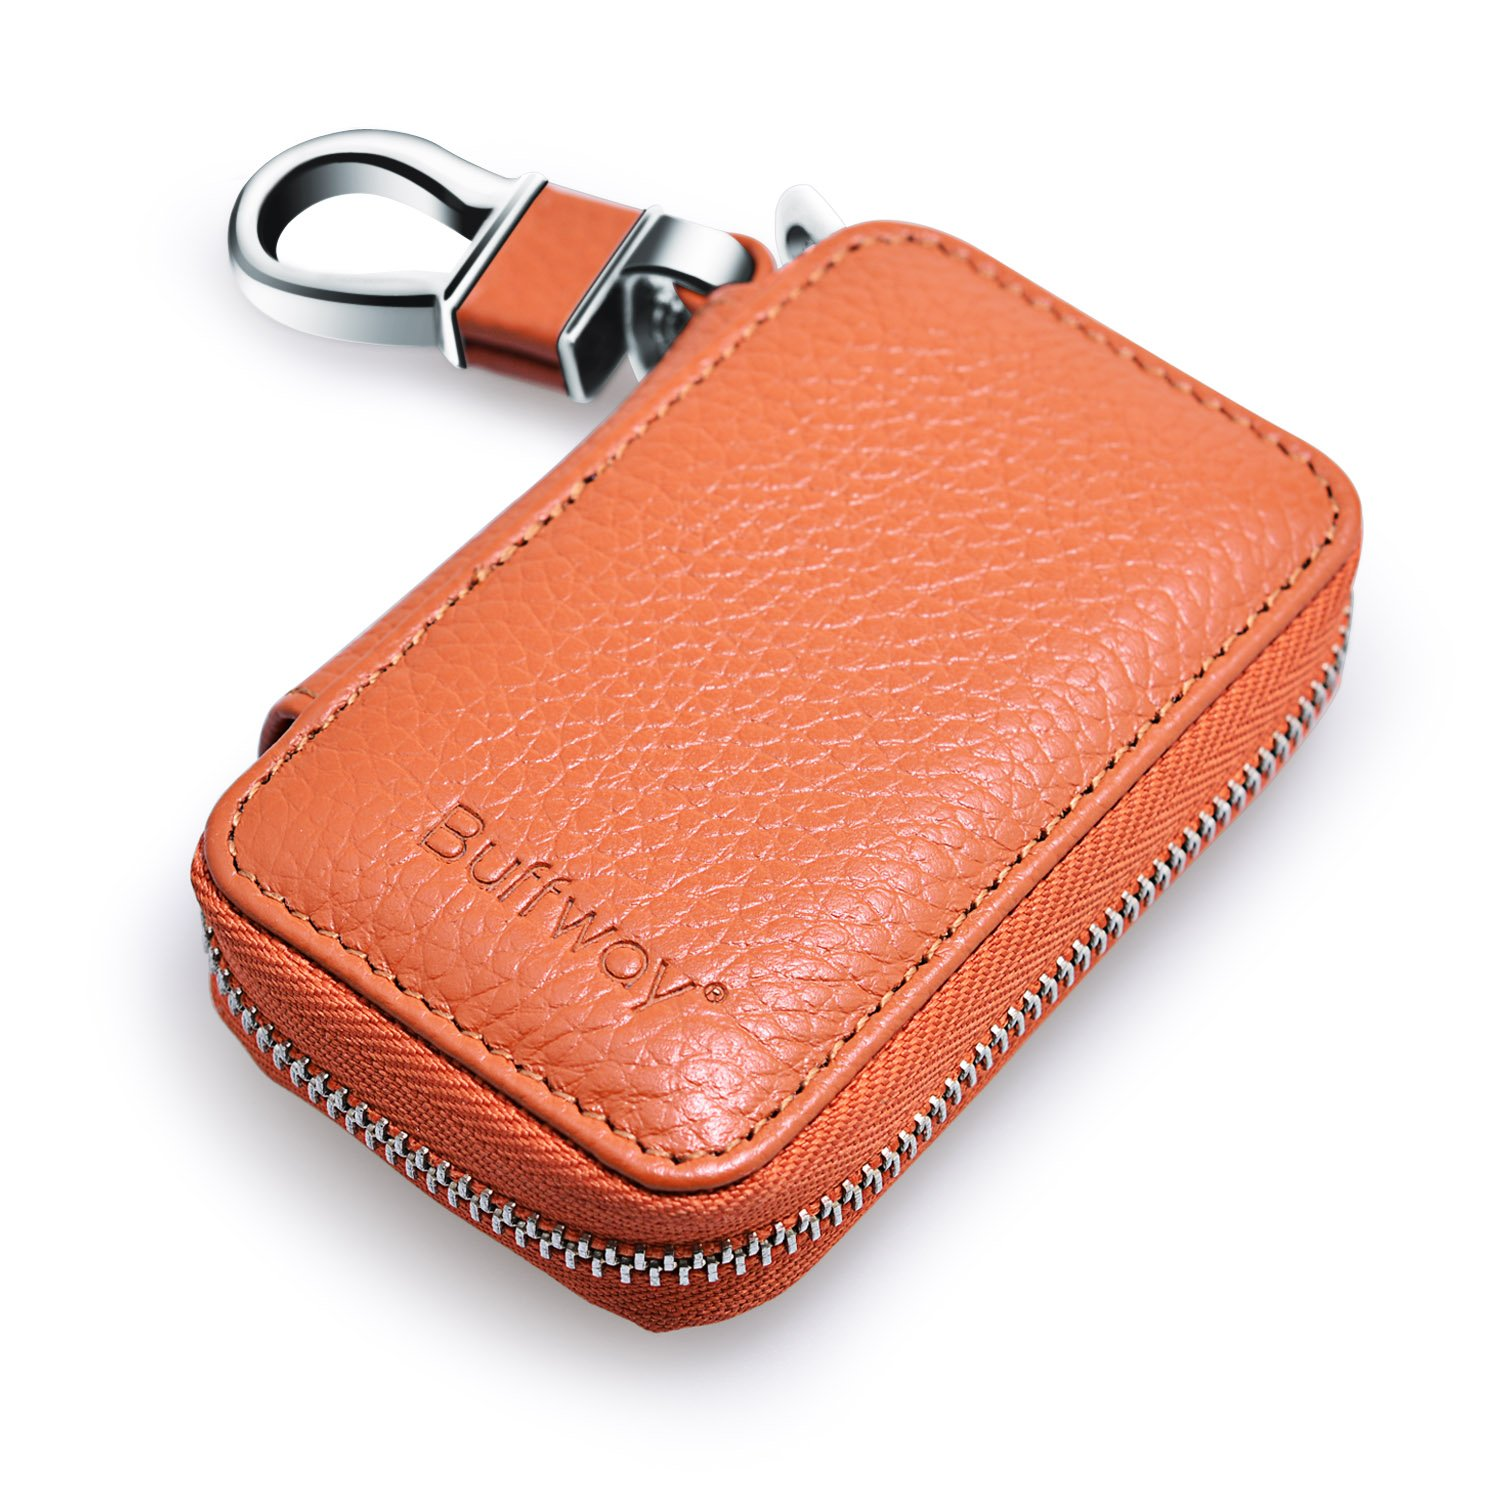 Buffway Car key Chain bag, Genuine Leather Car Smart KeyChain Coin Holder Metal Hook and Keyring Wallet Zipper Case for Auto Remote Key Fob - Cherry